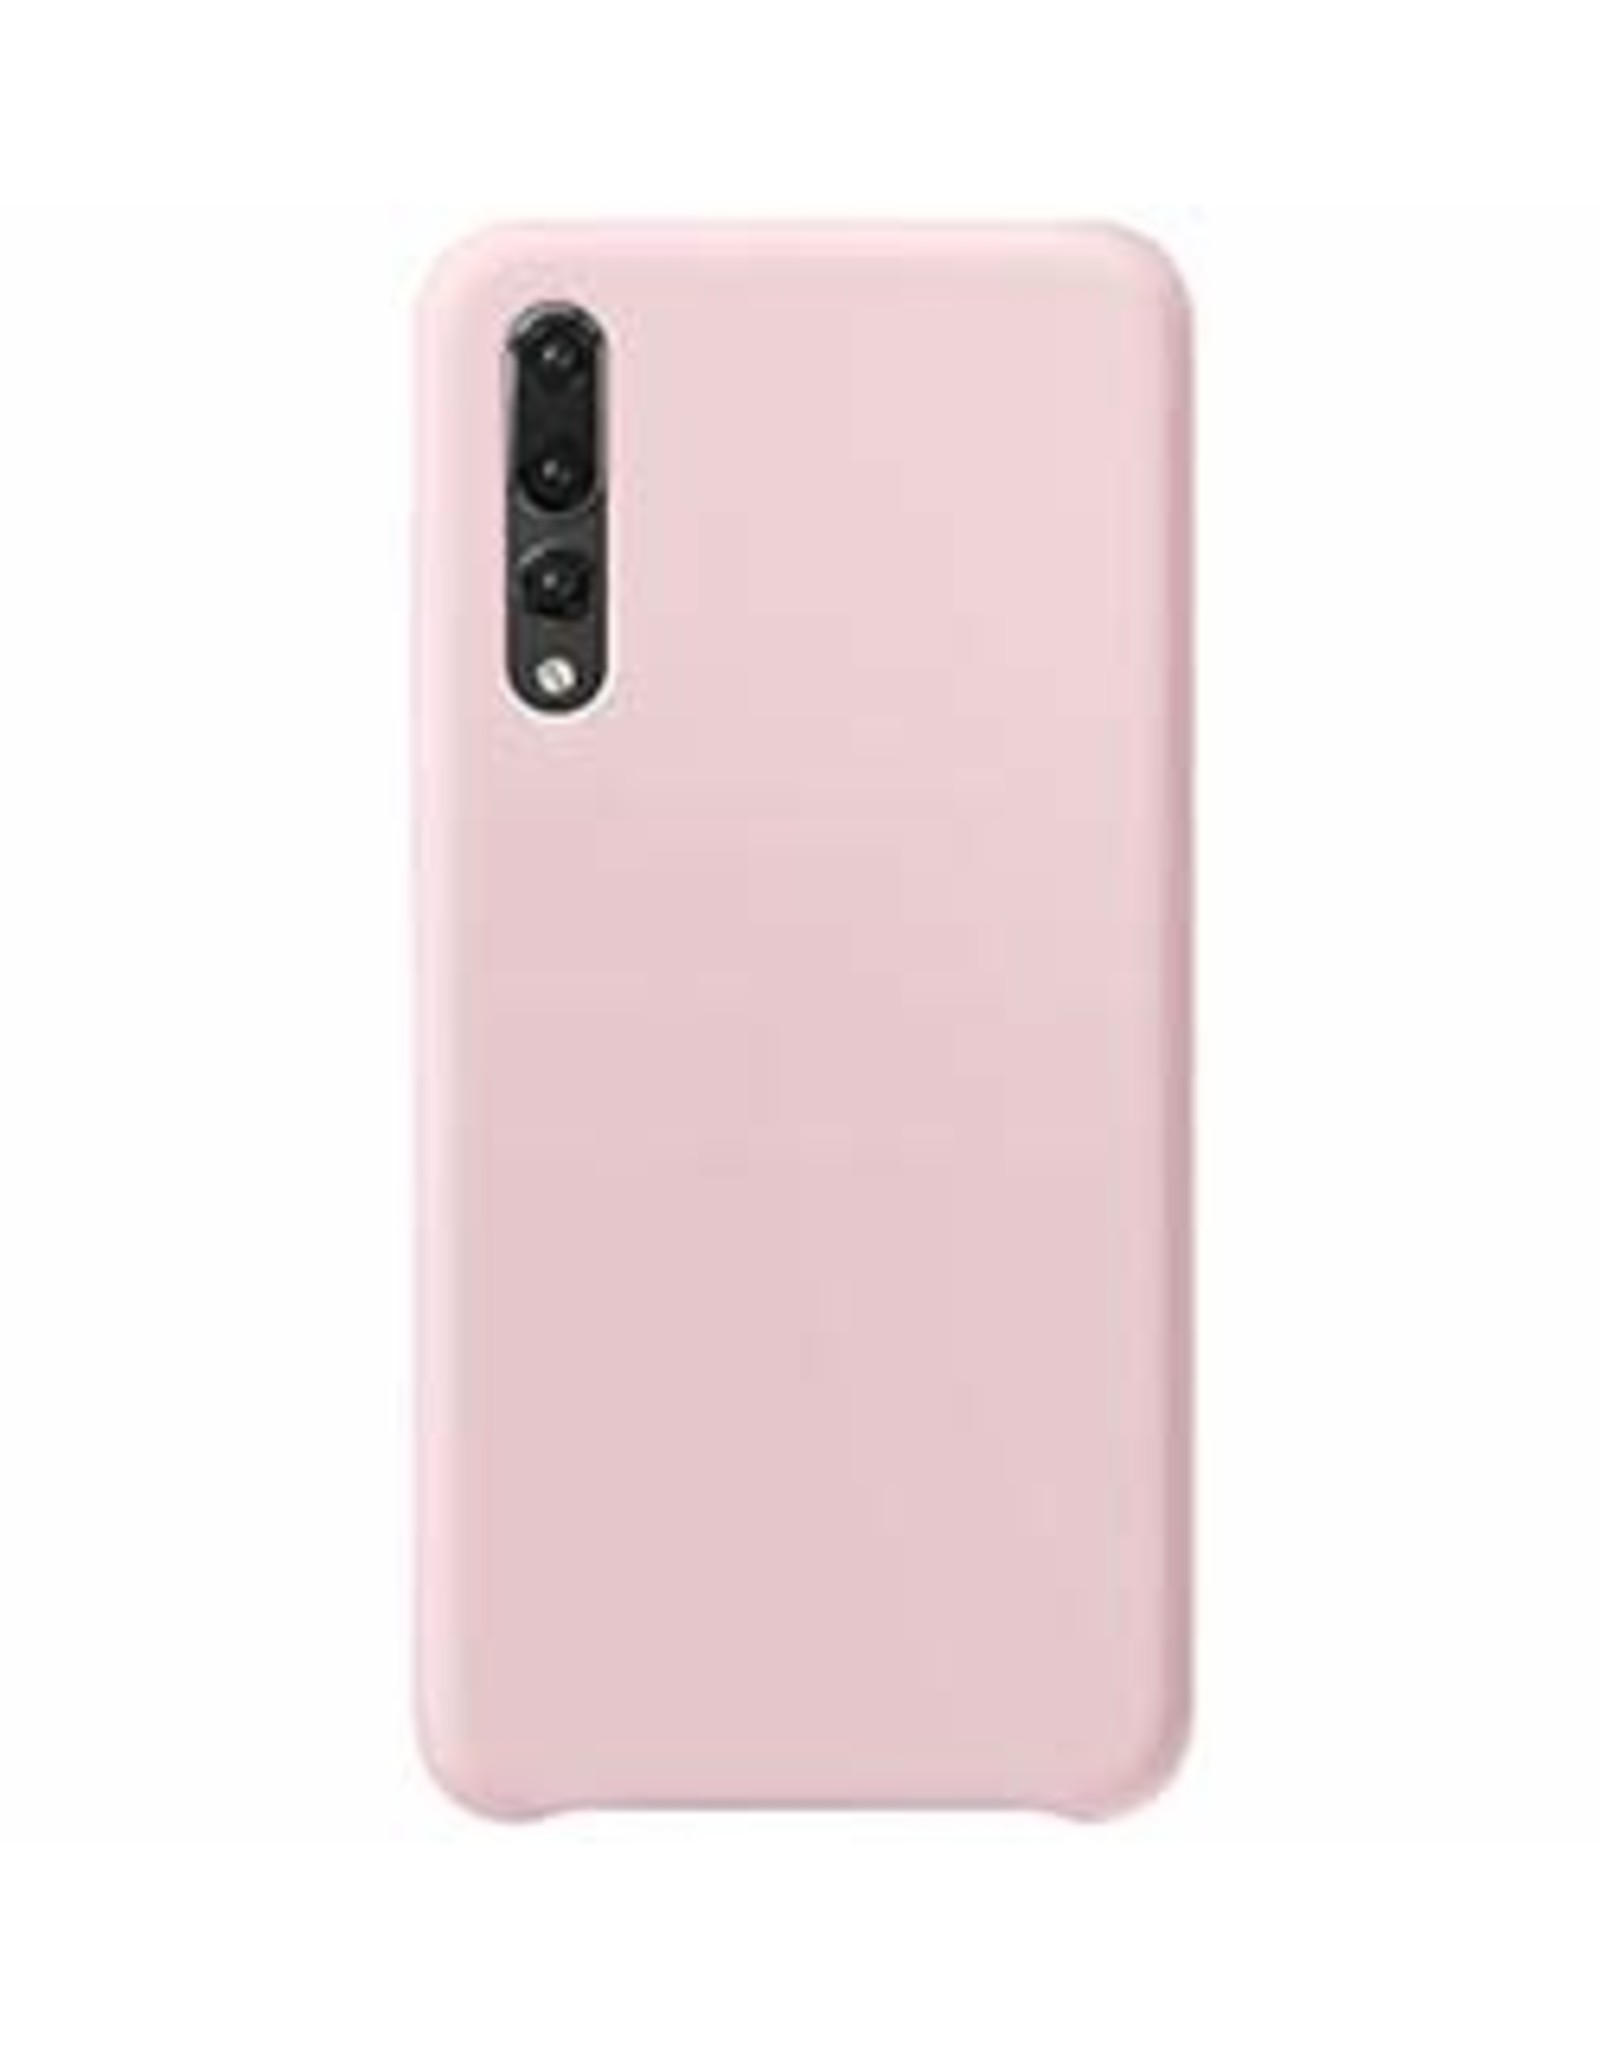 Huawei P30 Uunique Candy Pink Liquid Silicone Case 15-04666